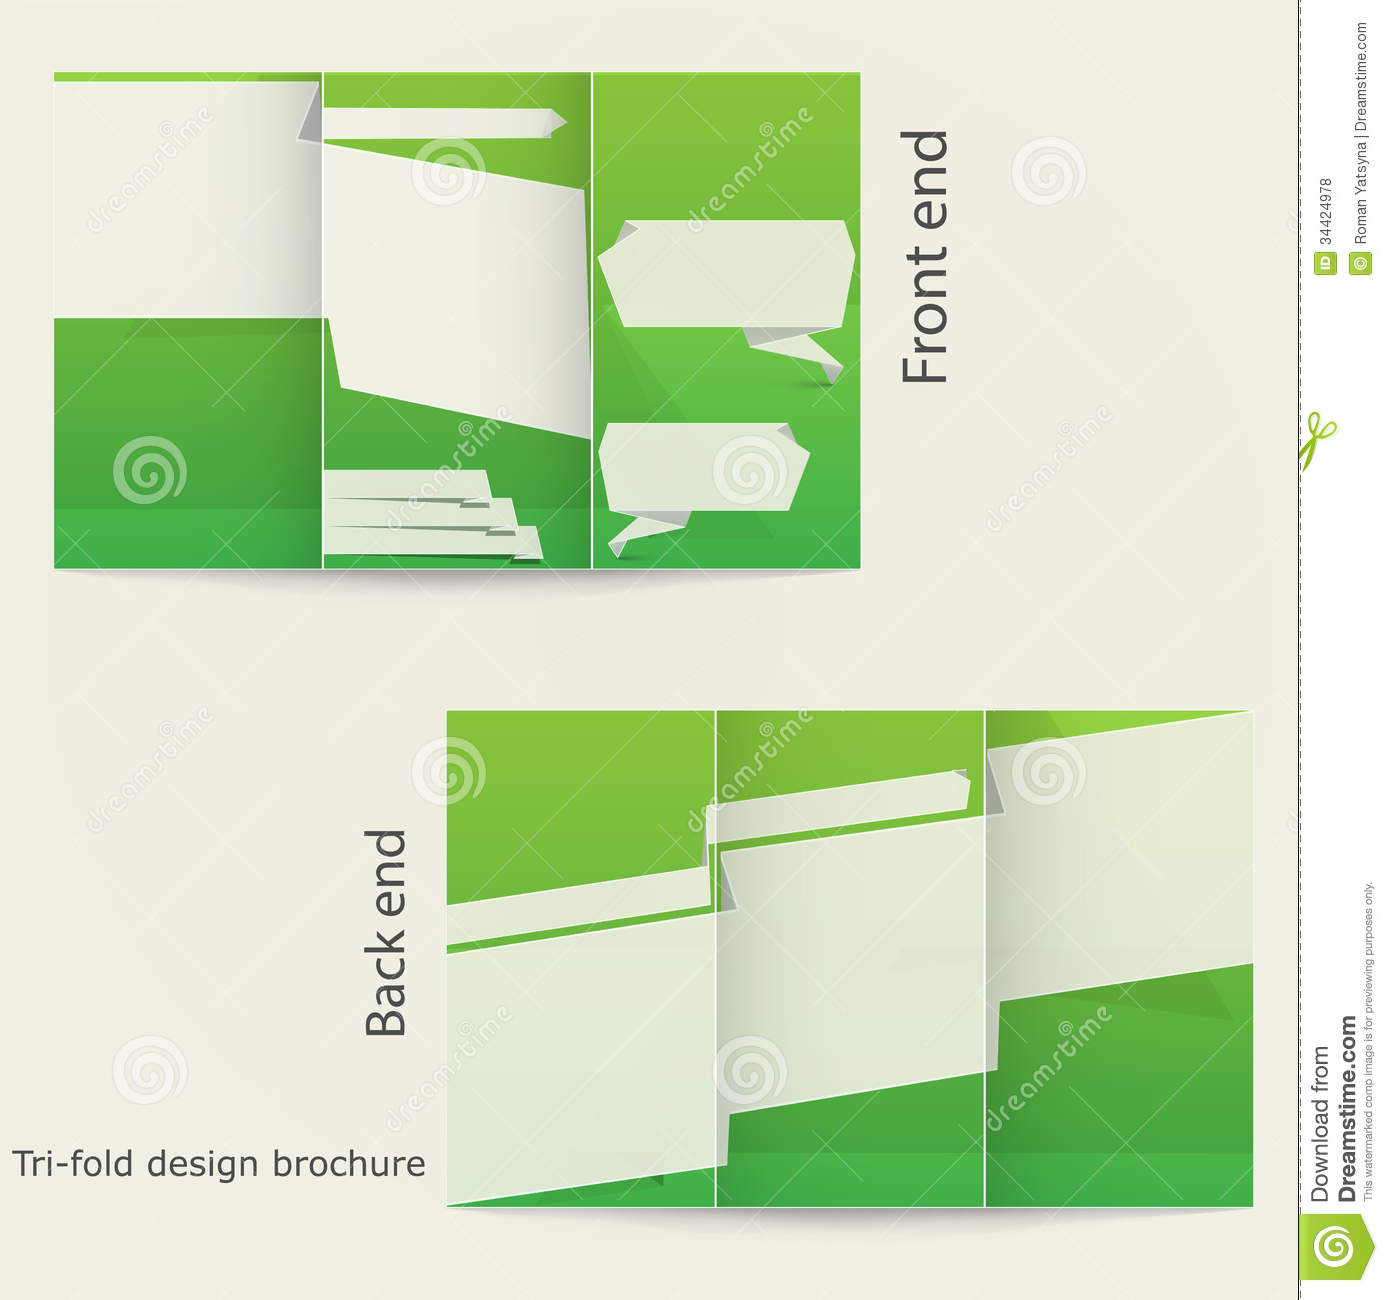 12 tri fold brochure template design images tri fold for Free template for brochure tri fold